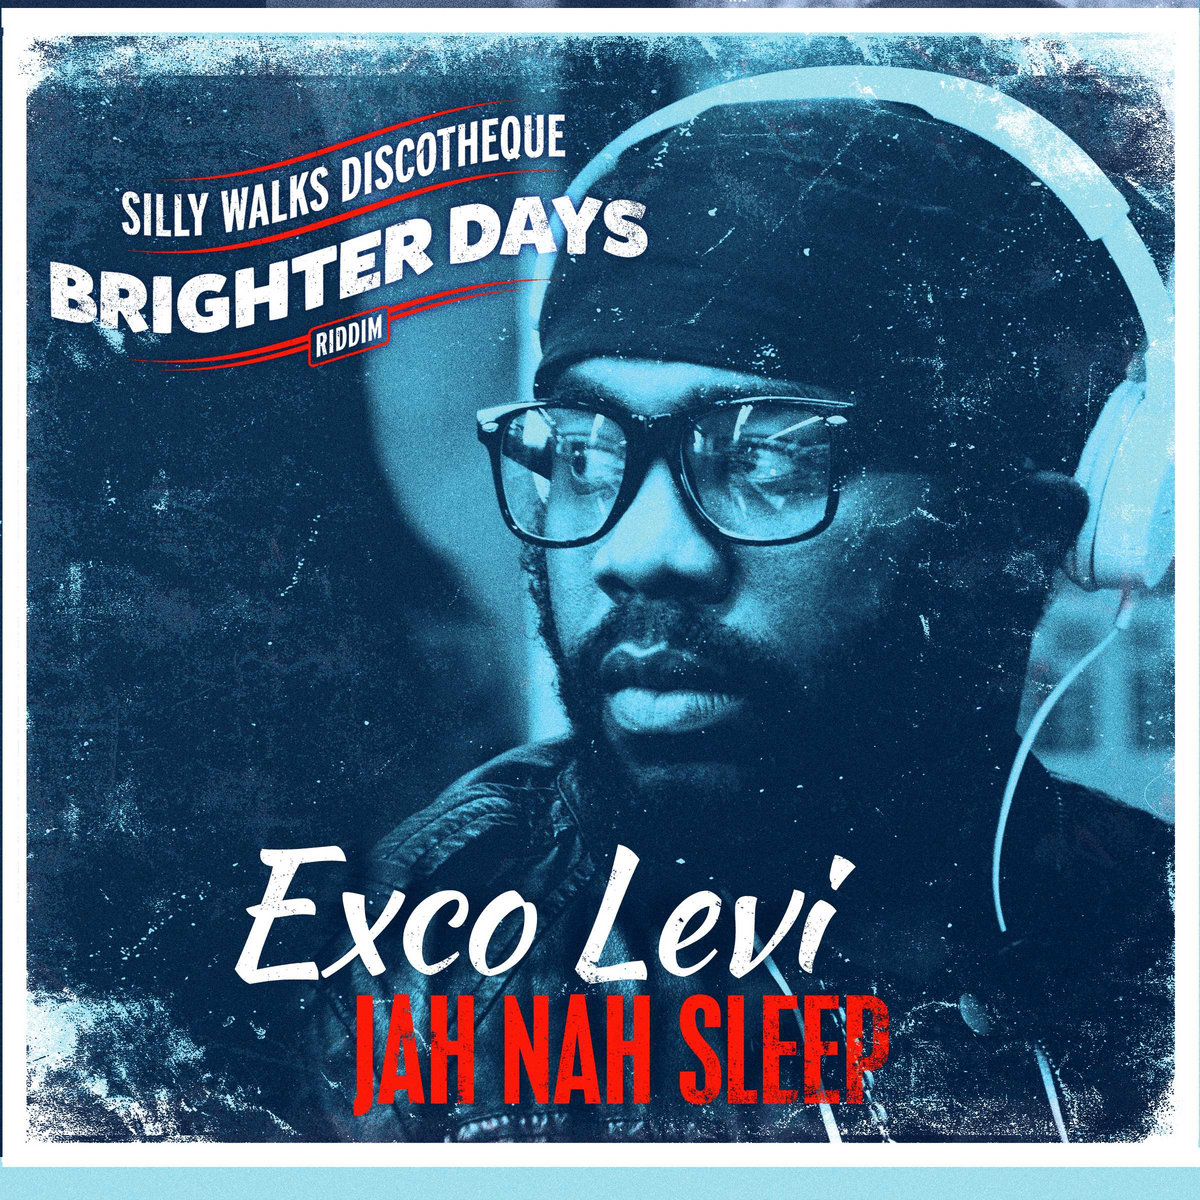 Jah Nah Sleep (Brighter Days Riddim) | Silly Walks Discotheque